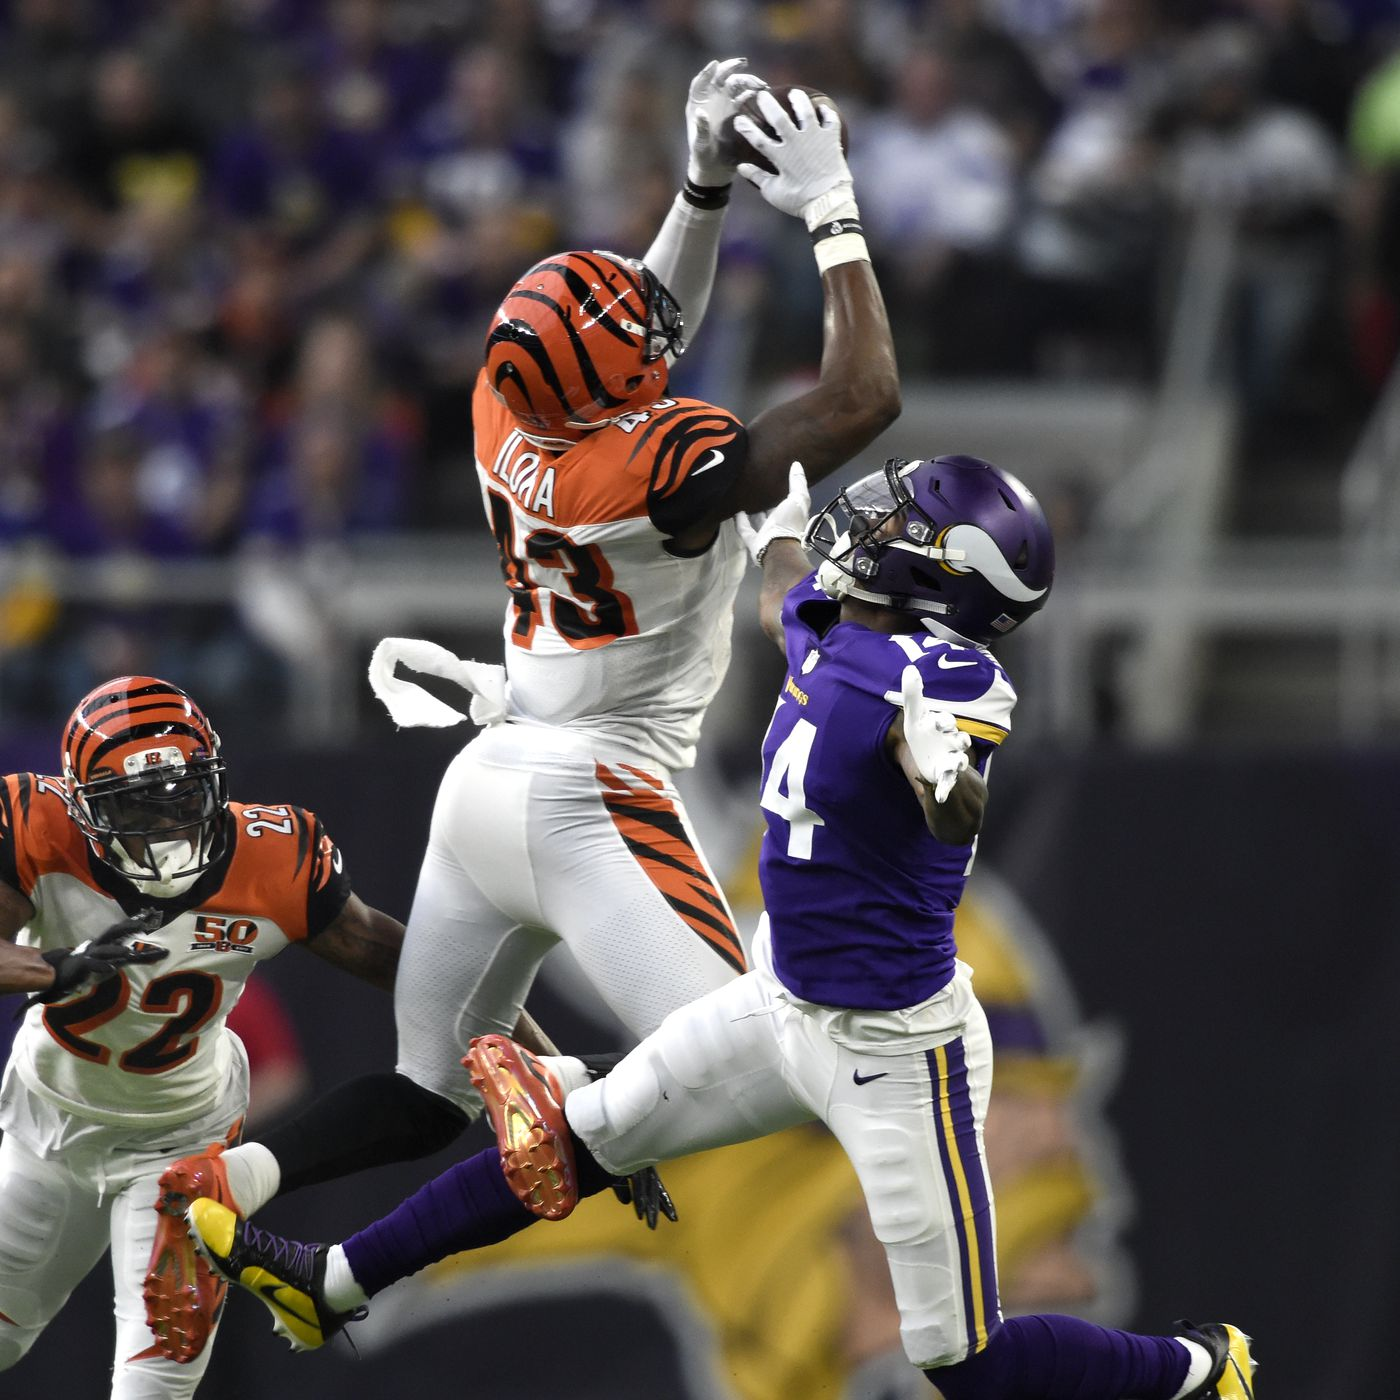 Free agent S George Iloka signing with Vikings - Daily Norseman